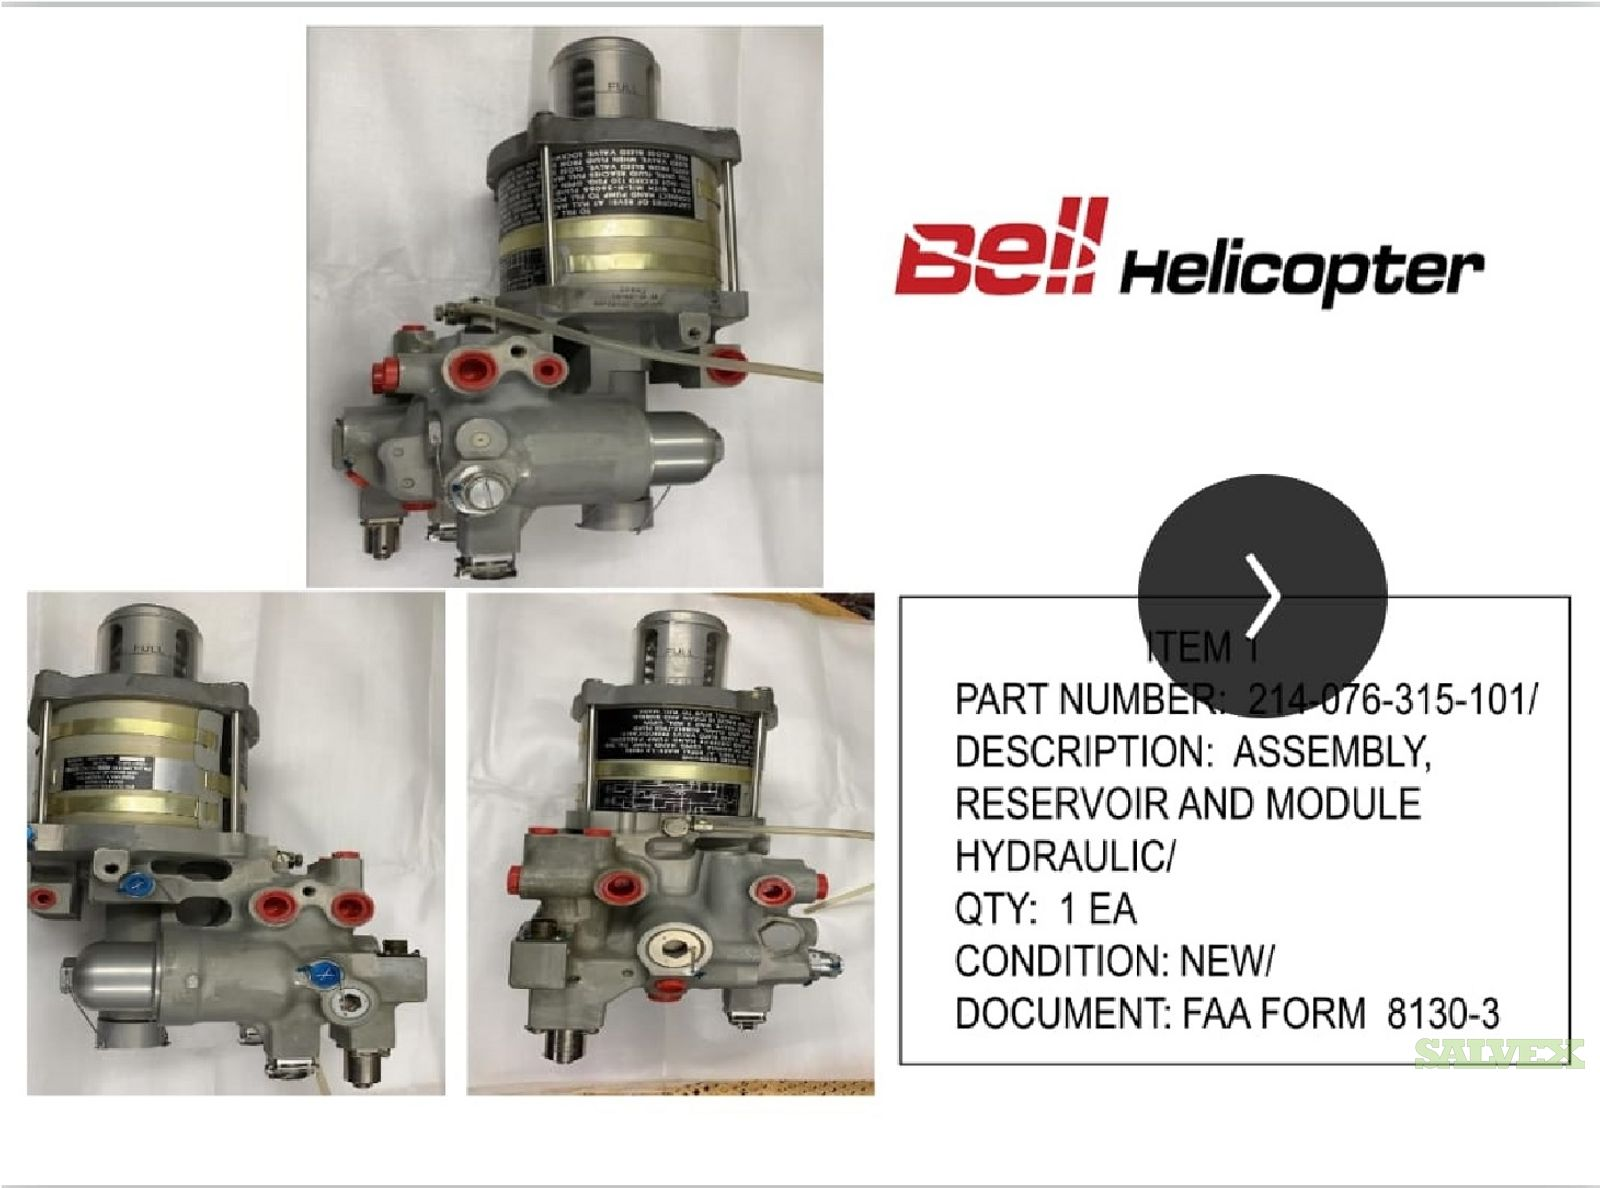 Assembly, Reservoir and Module Hydraulic (1 Unit)